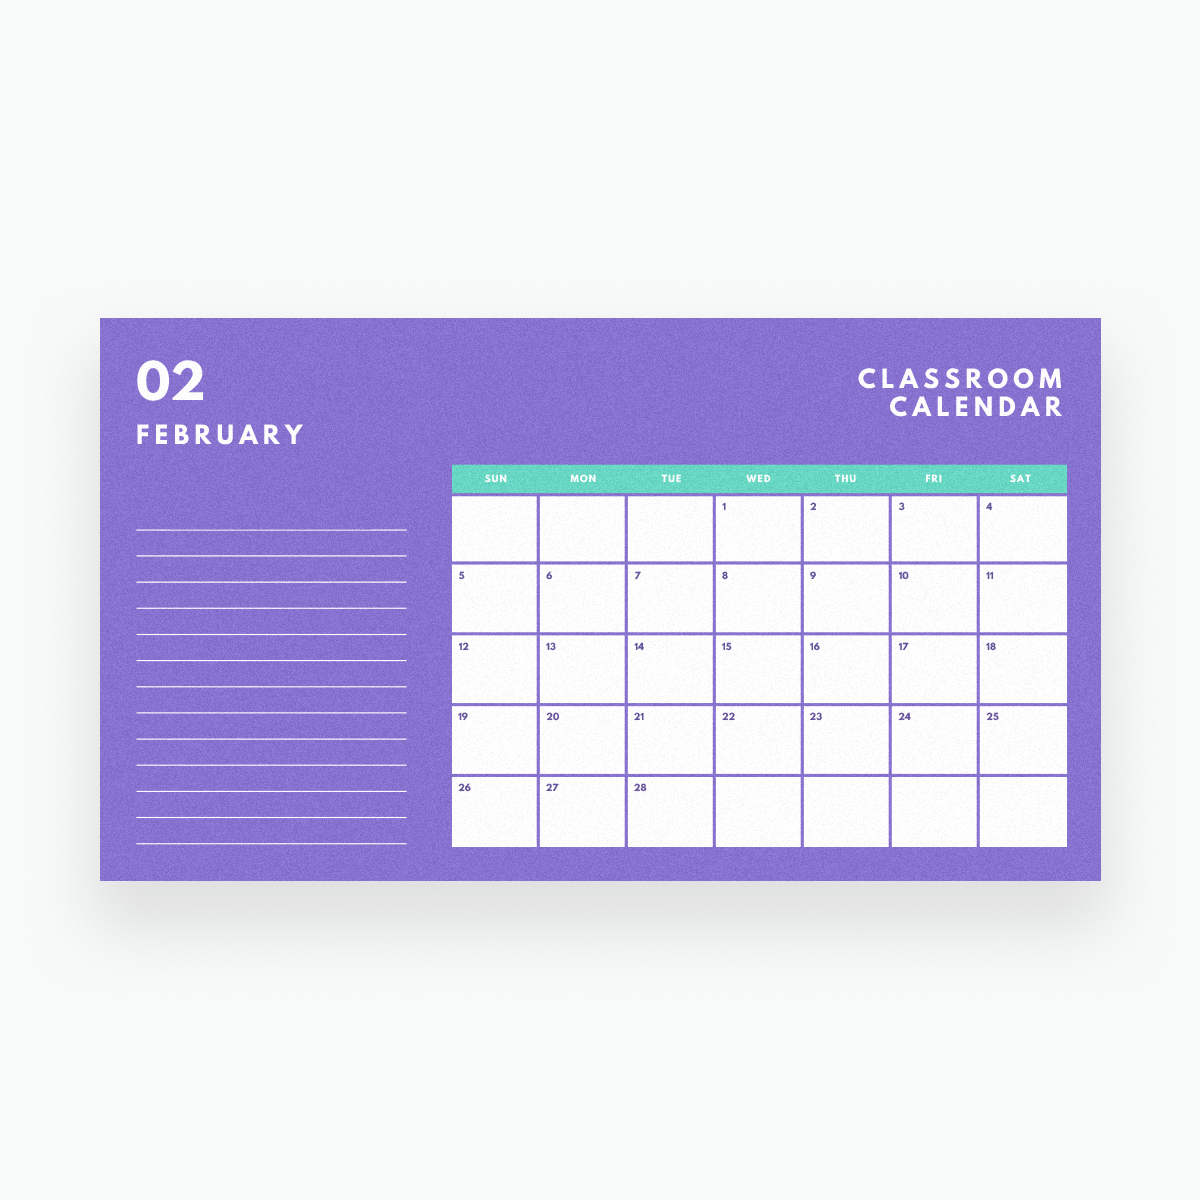 Free Online Calendar Maker: Design A Custom Calendar  Canva for Calendar Maker Free Printable